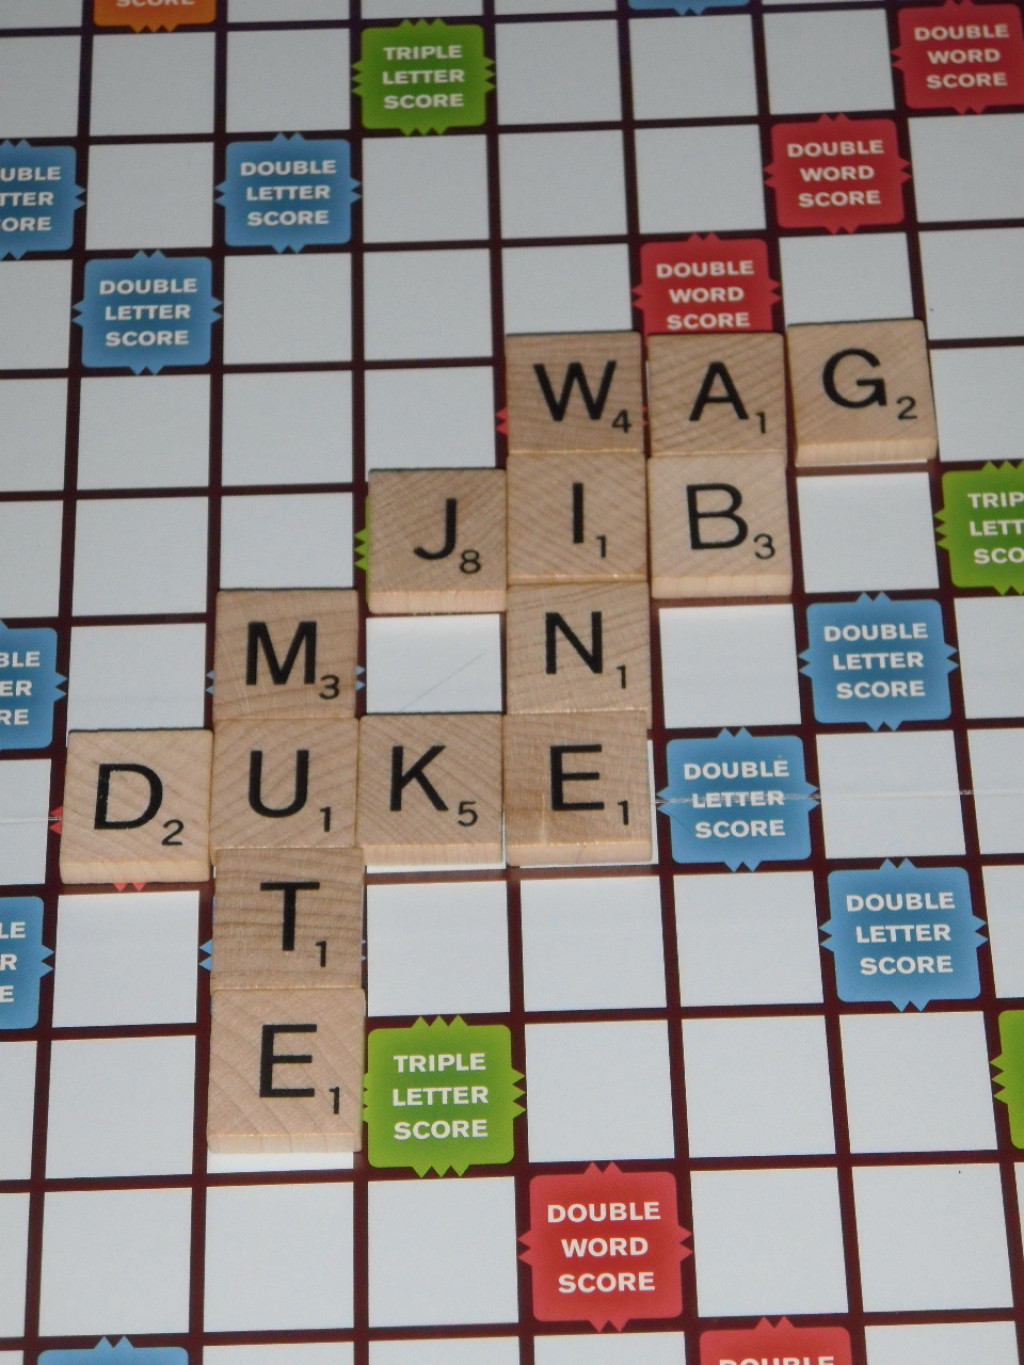 how to get a high score in scrabble